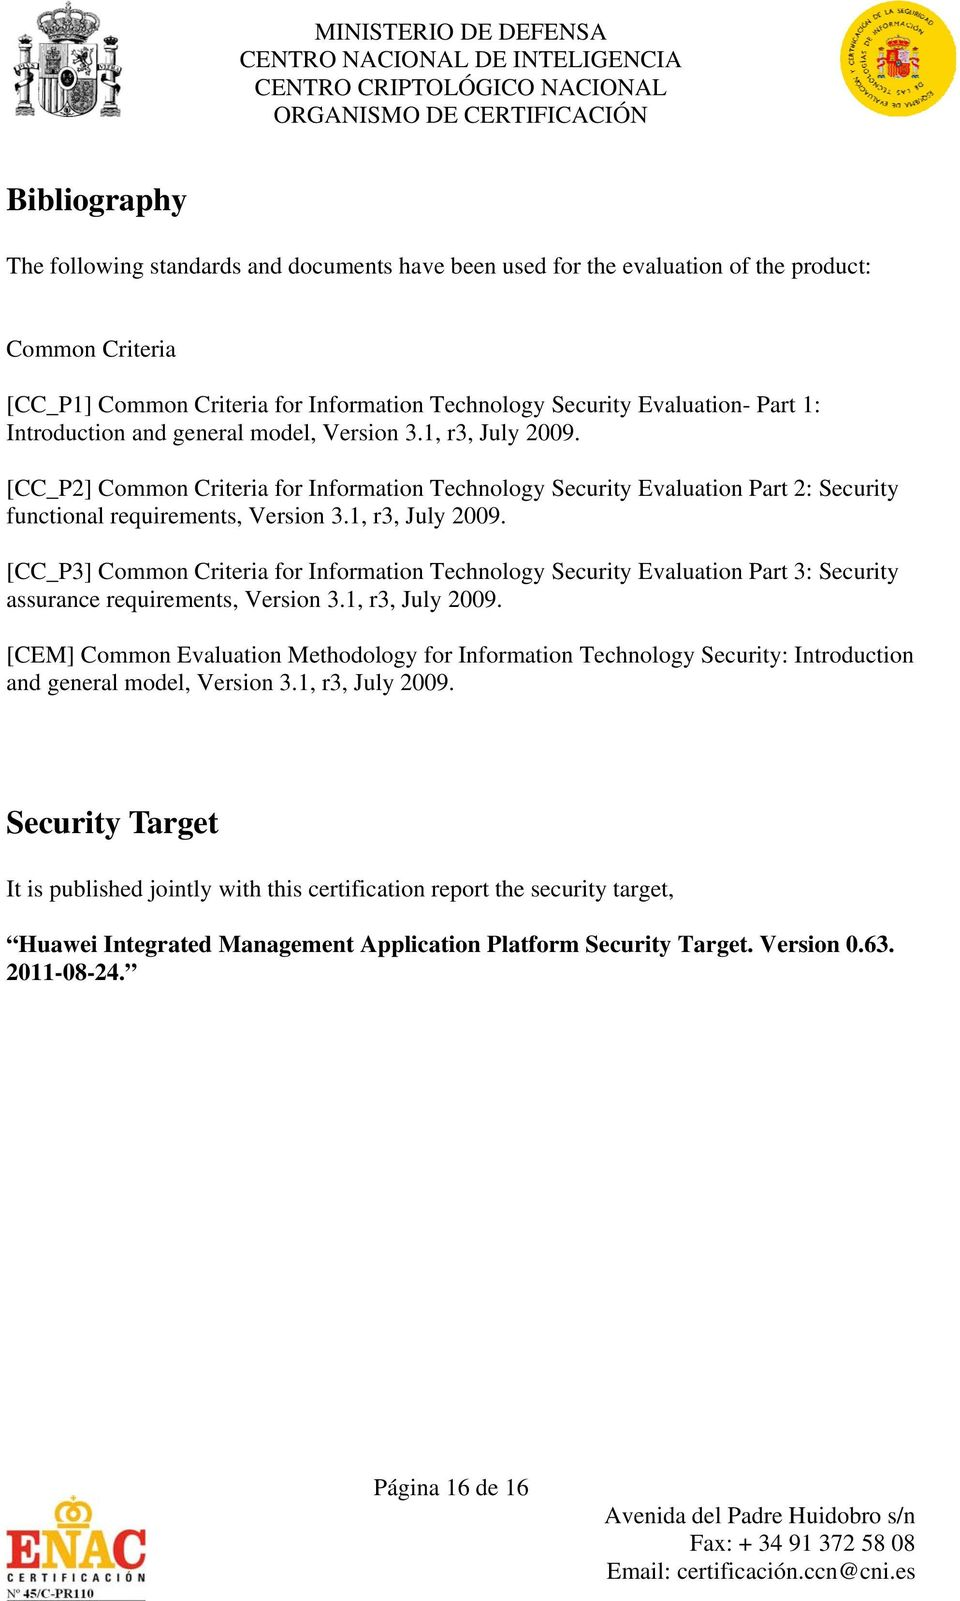 1, r3, July 2009. [CEM] Common Evaluation Methodology for Information Technology Security: Introduction and general model, Version 3.1, r3, July 2009. Security Target It is published jointly with this certification report the security target, Huawei Integrated Management Application Platform Security Target.